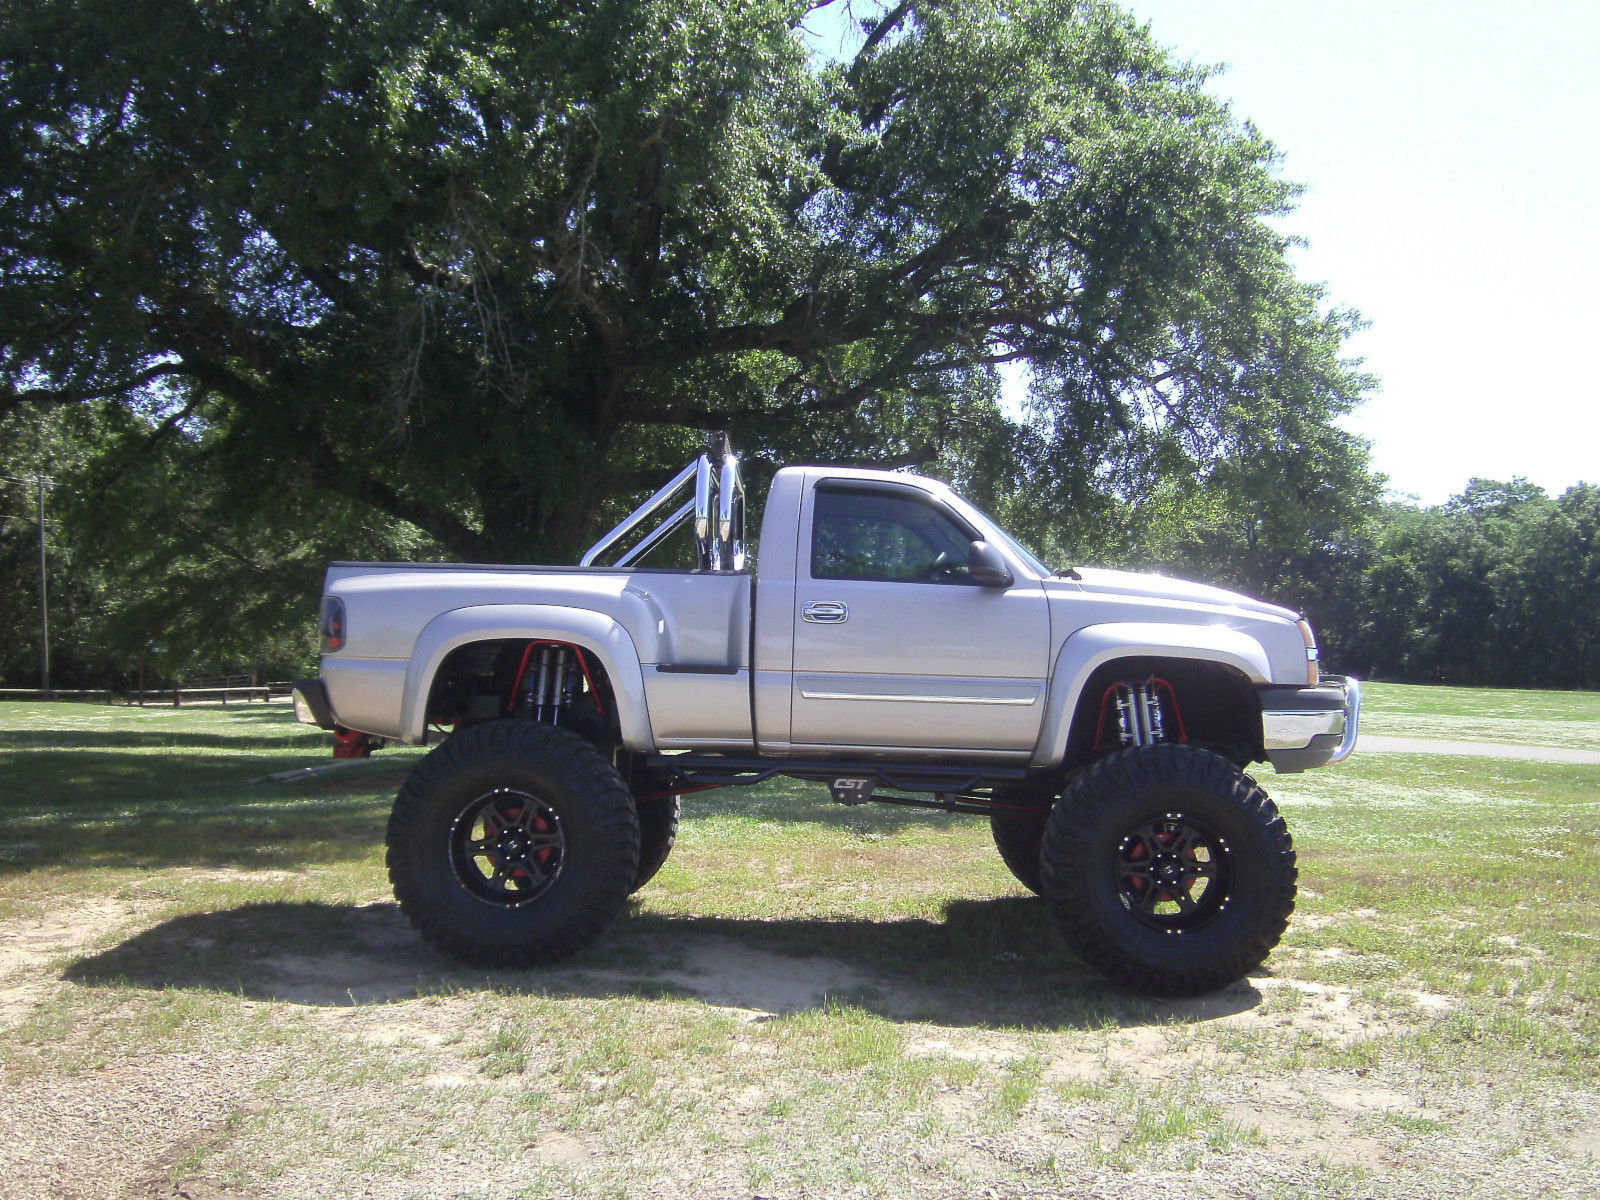 Chevrolet Silverado Reg Cab X Stepside Monster Truck For Sale on 1992 chevy 1500 4x4